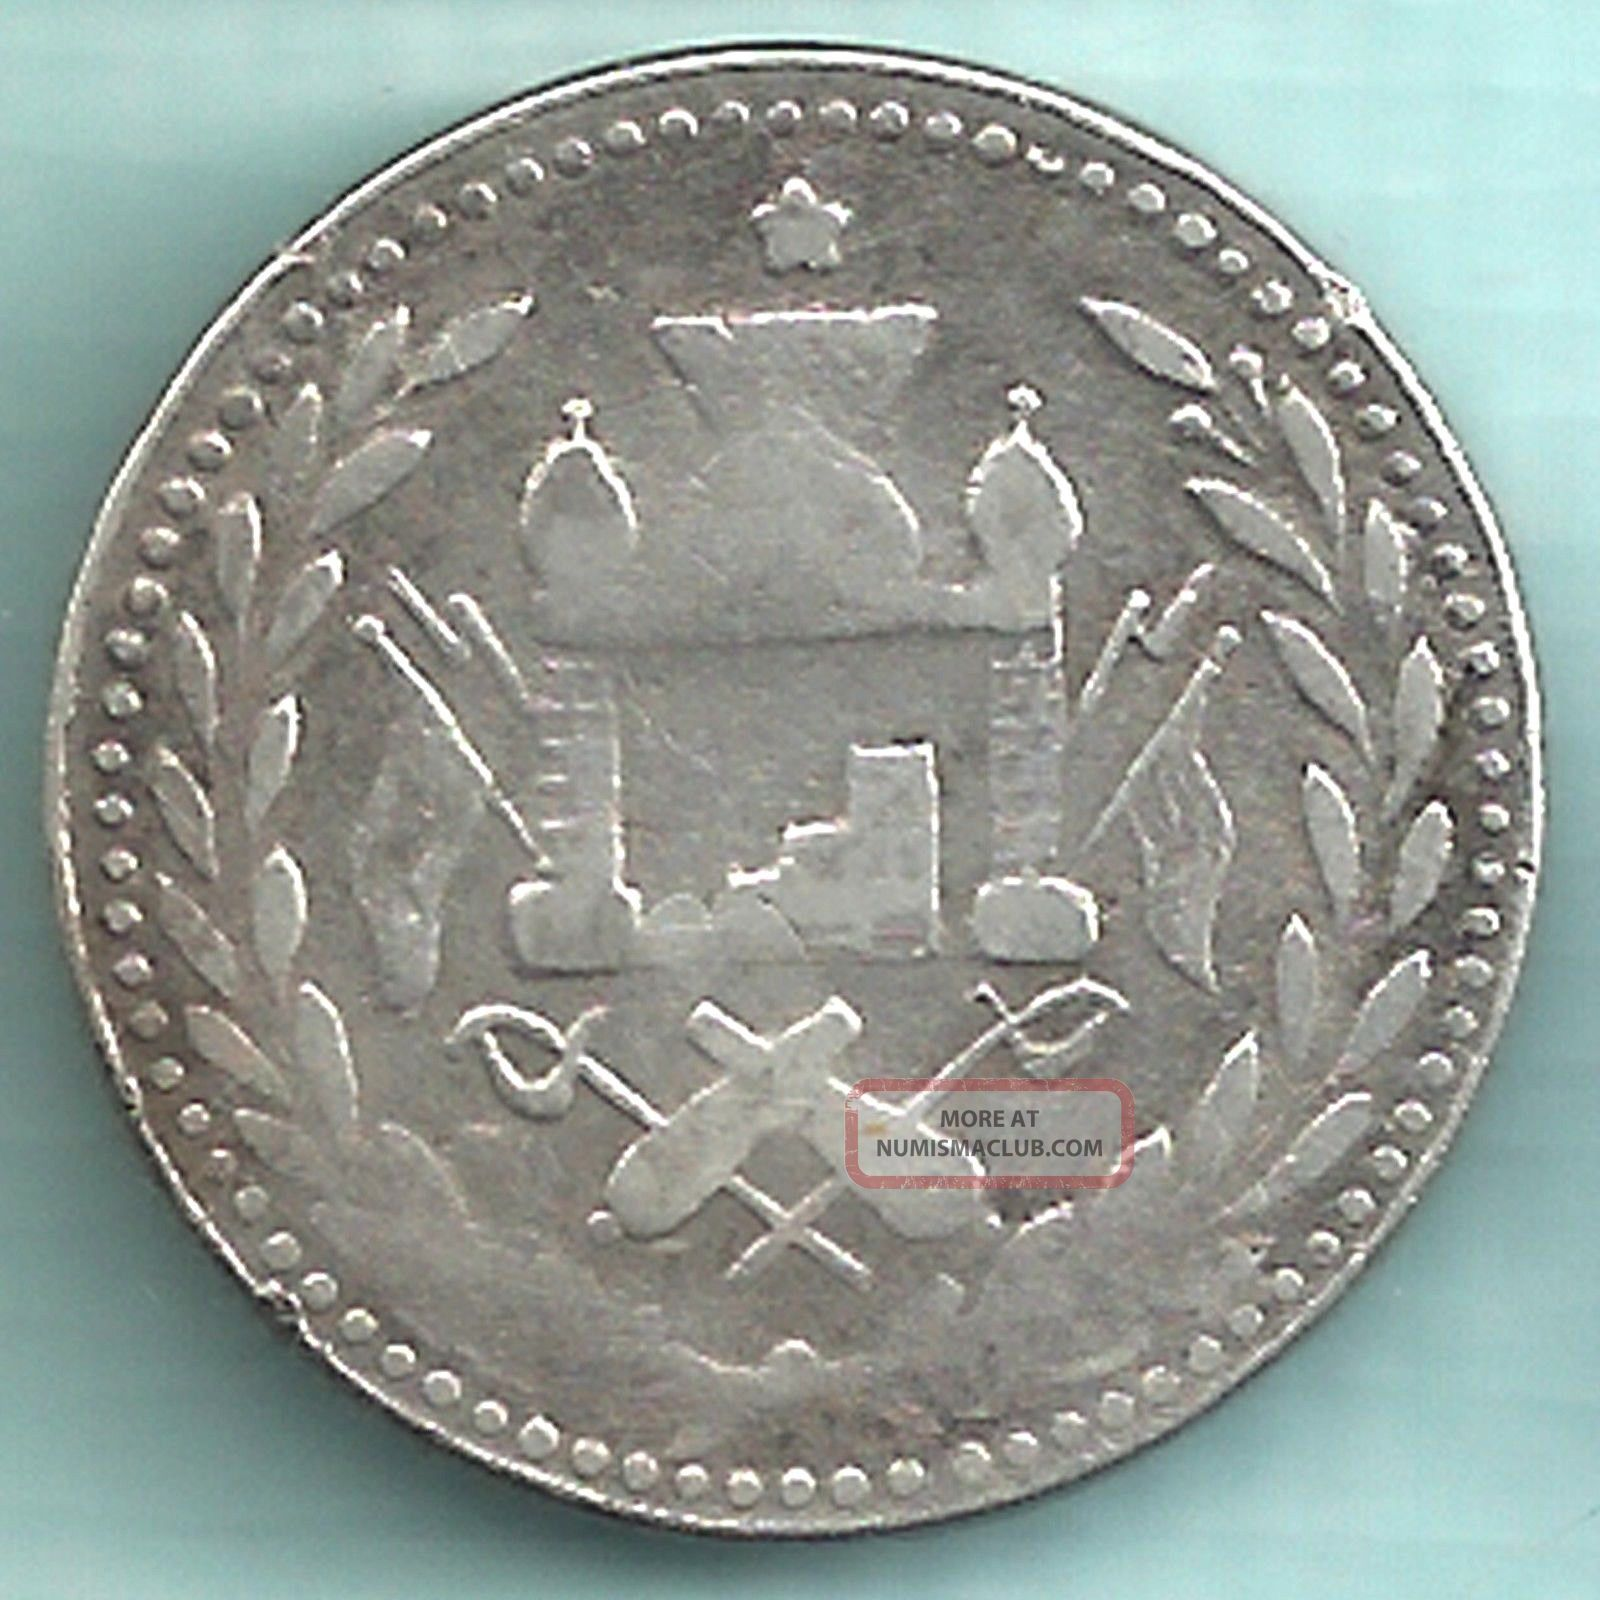 Afghanistan - Ah 1318 - Silver Rupee - Rarest Silver Coin Middle East photo